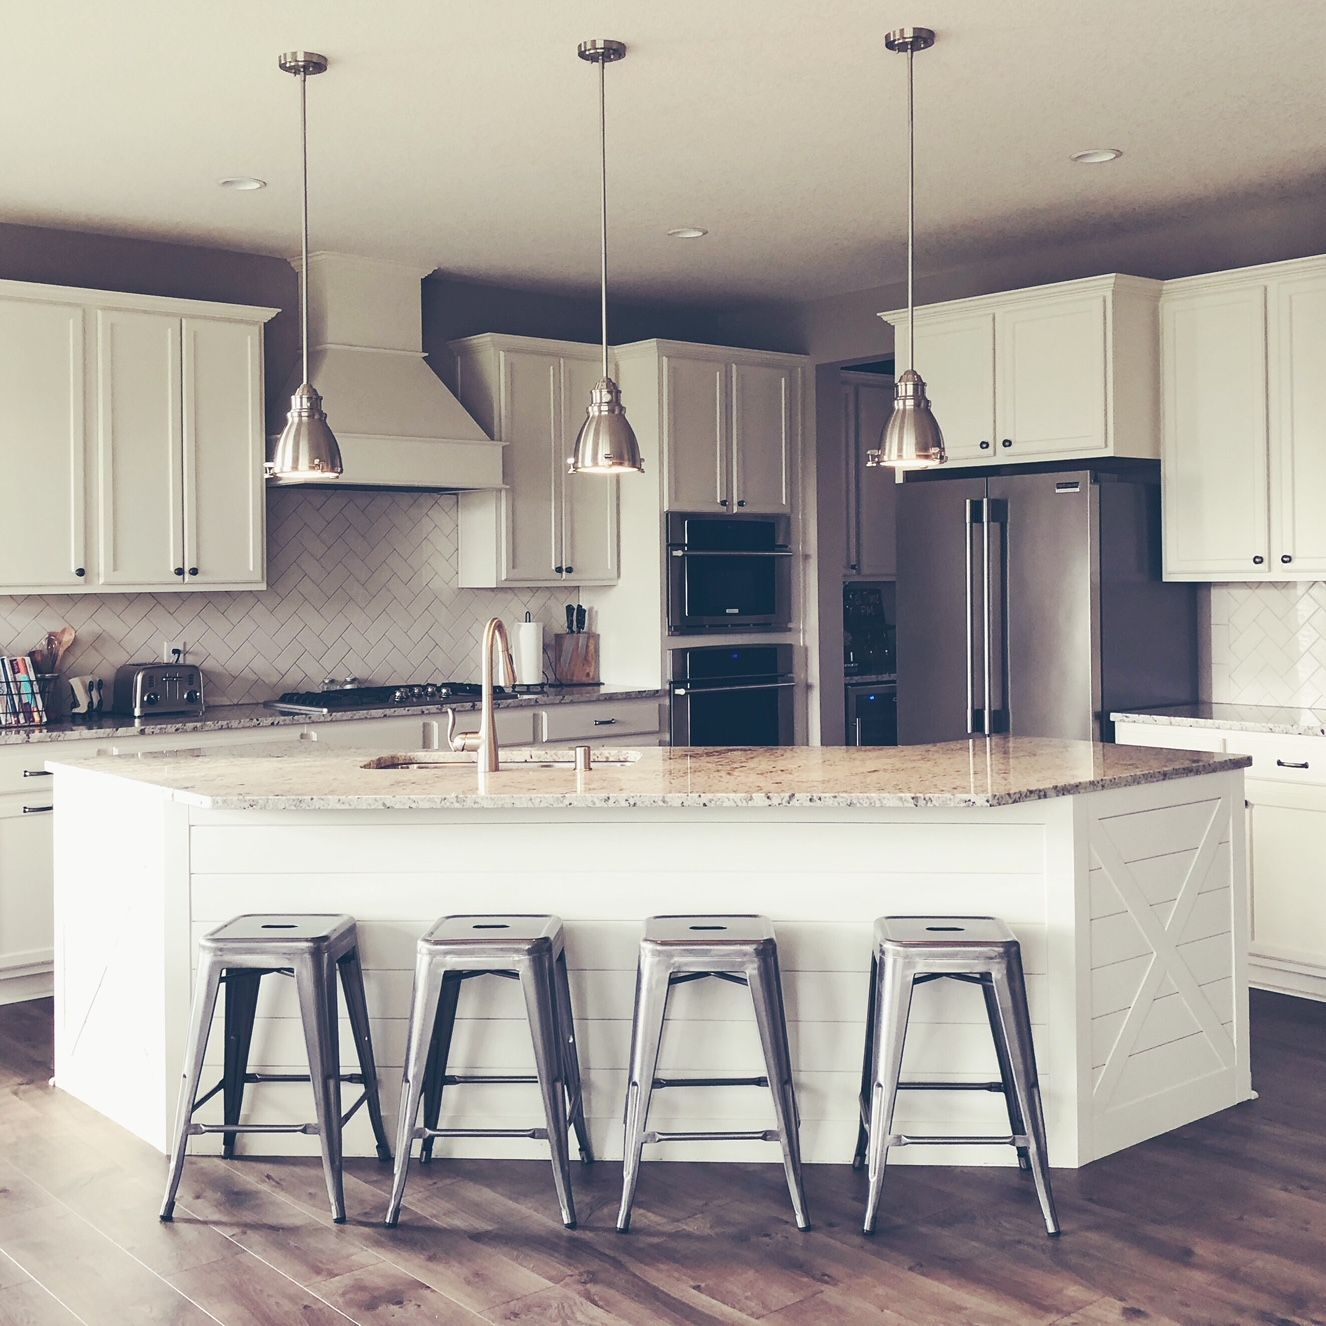 A Look At Our Corner Kitchen And Shiplap Island From Builder Grade To Farmhouse Fab Diy Kitchen Renovation Builder Grade Kitchen Kitchen Renovation